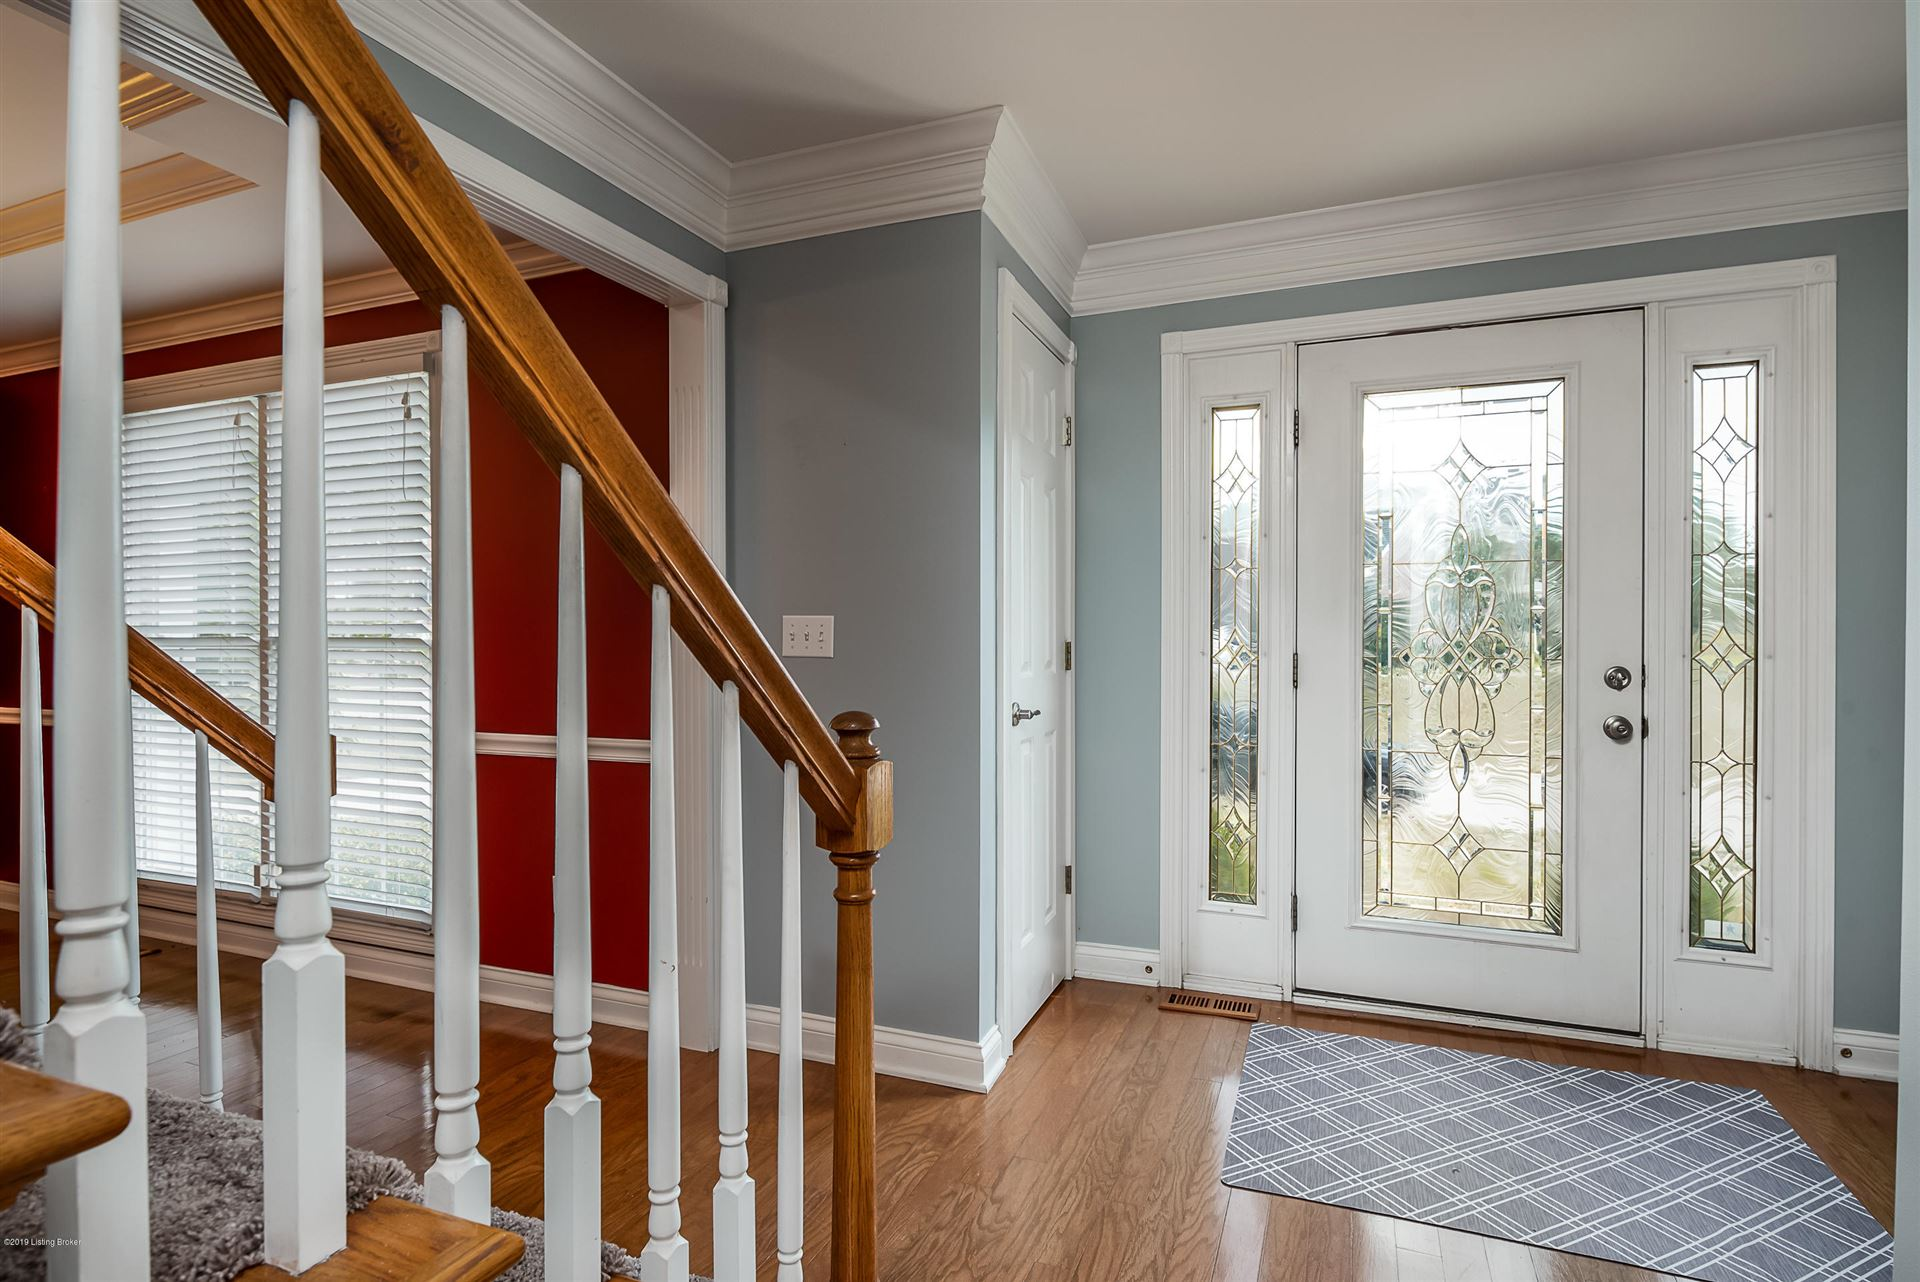 Property Image Of 6106 Mountain Ash Ct In Prospect, Ky